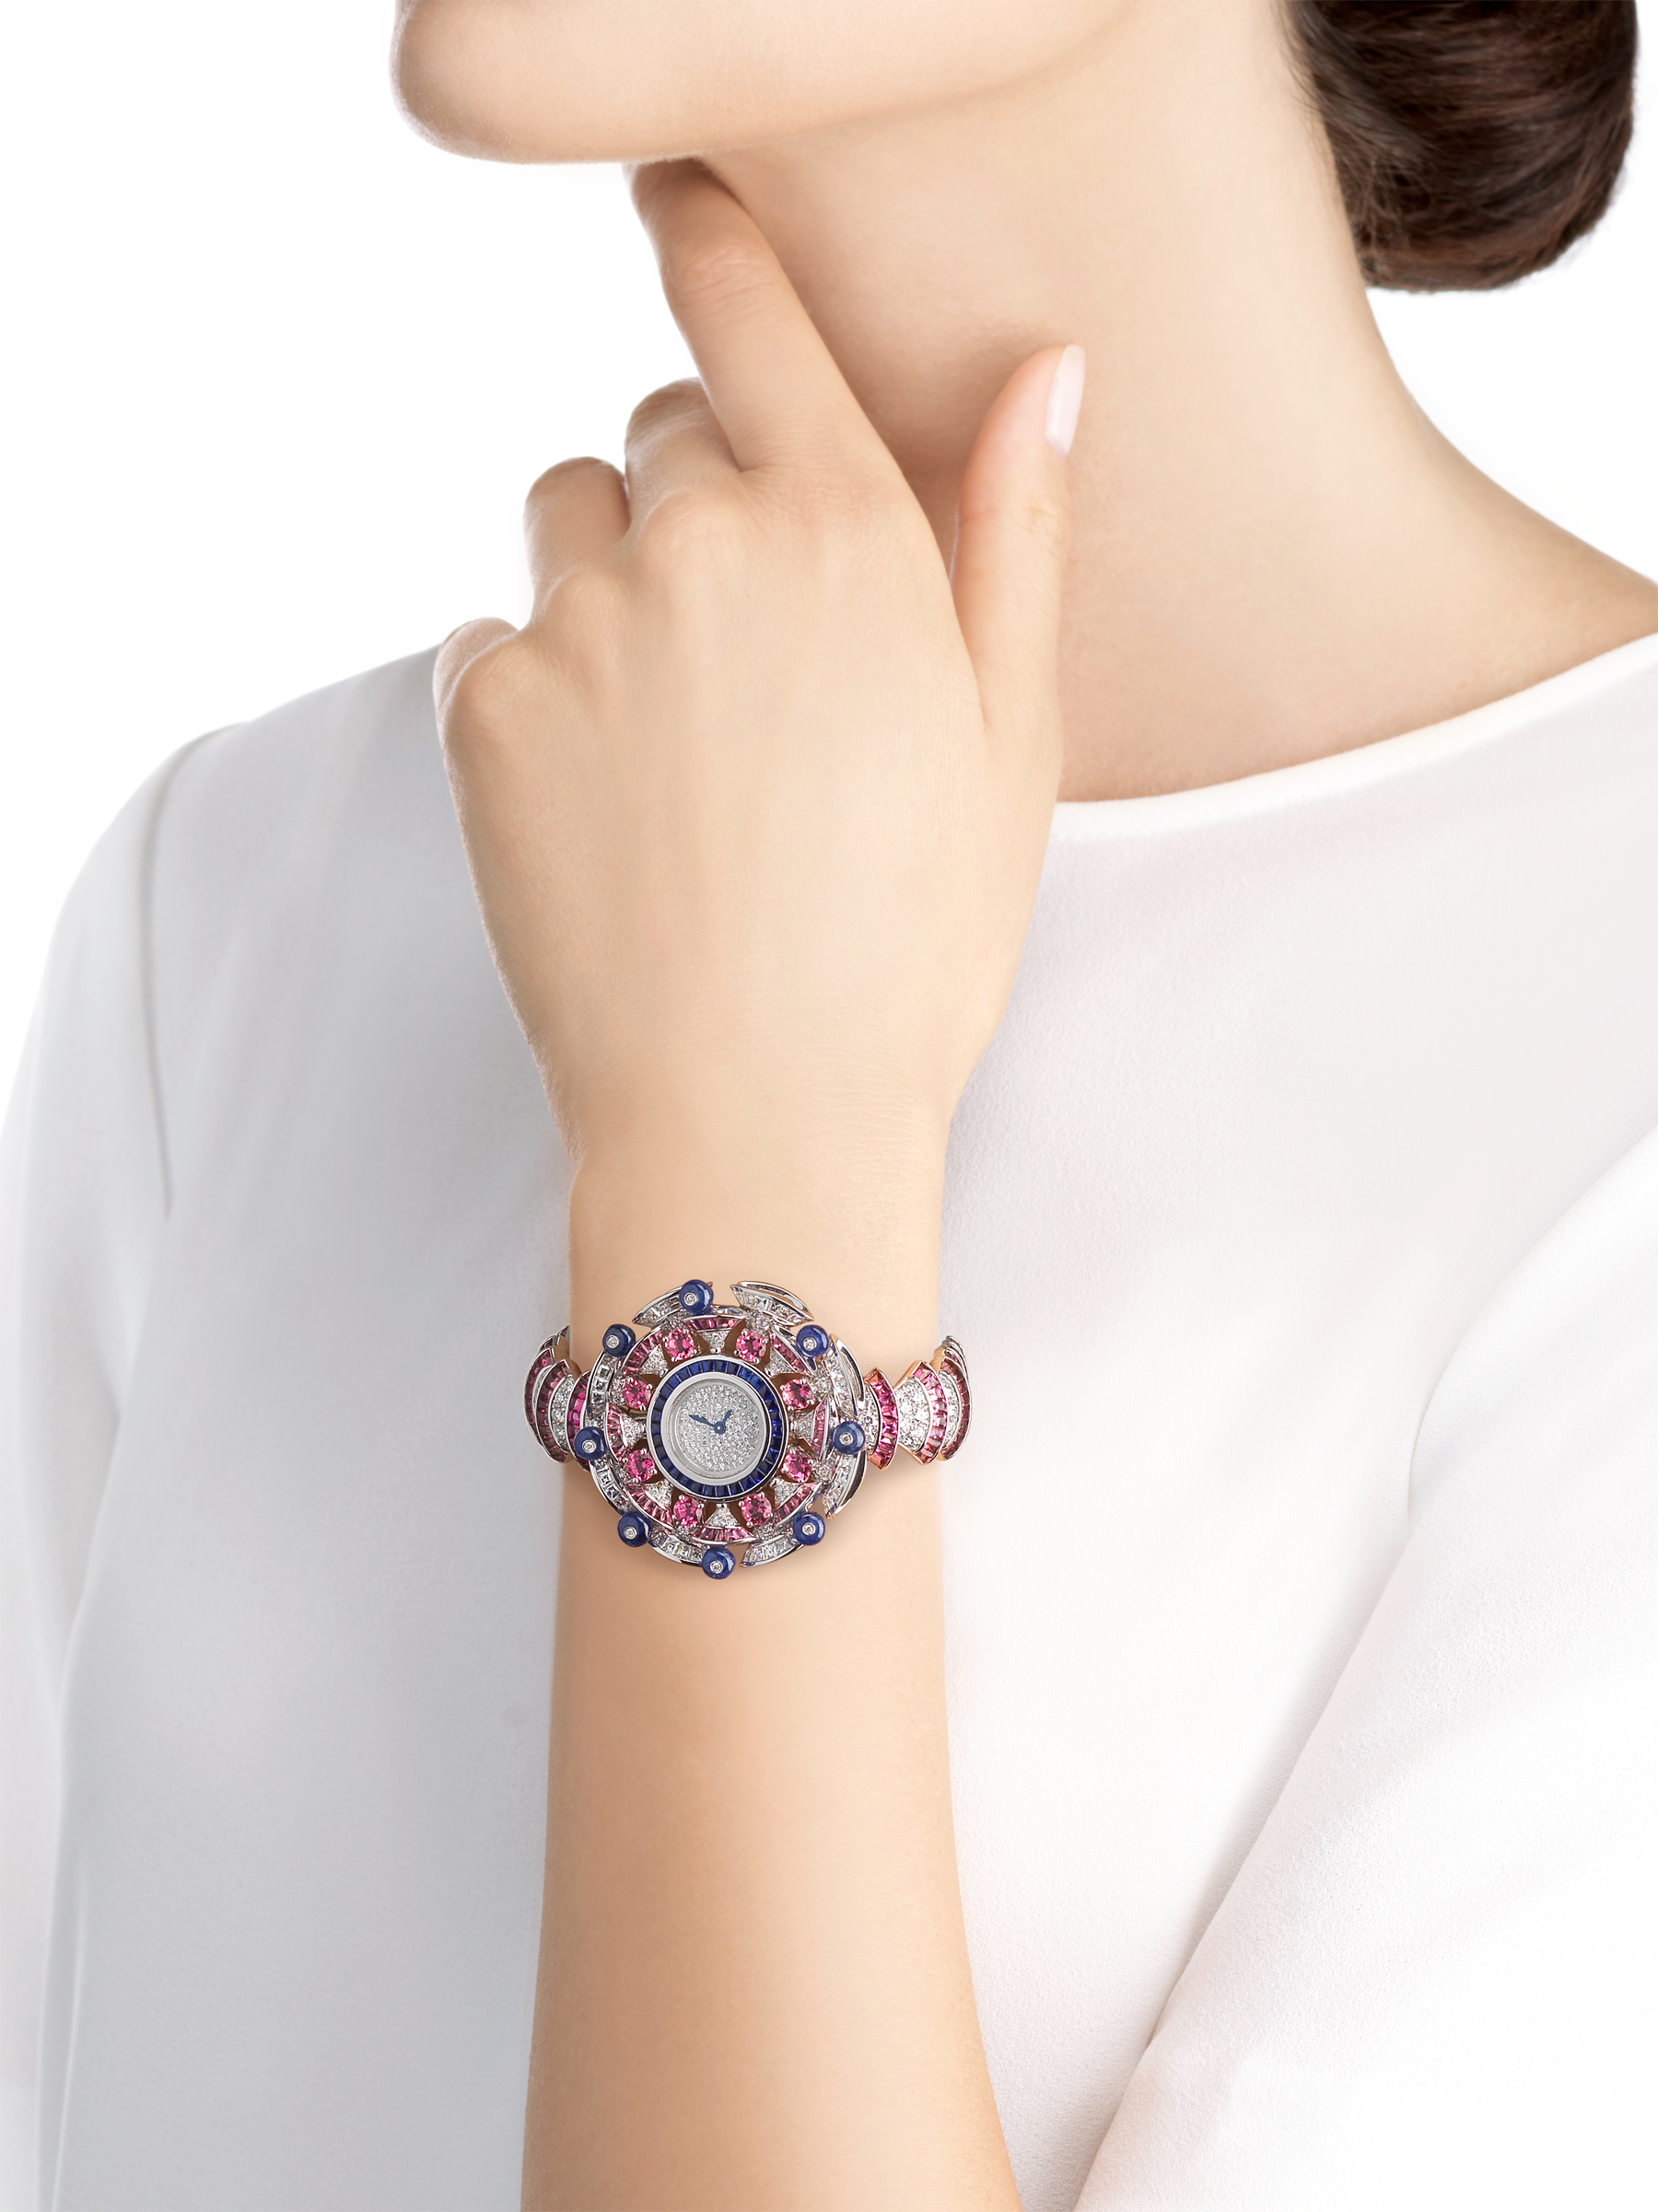 DIVAS' DREAM watch with 18 kt white gold case set with baguette and brilliant-cut diamonds, round and buff-cut rubellites, buff-cut sapphires and sapphire beads, snow pavé dial, 18 kt white gold bracelet set with brilliant-cut diamonds and buff-cut rubellites 102153 image 3